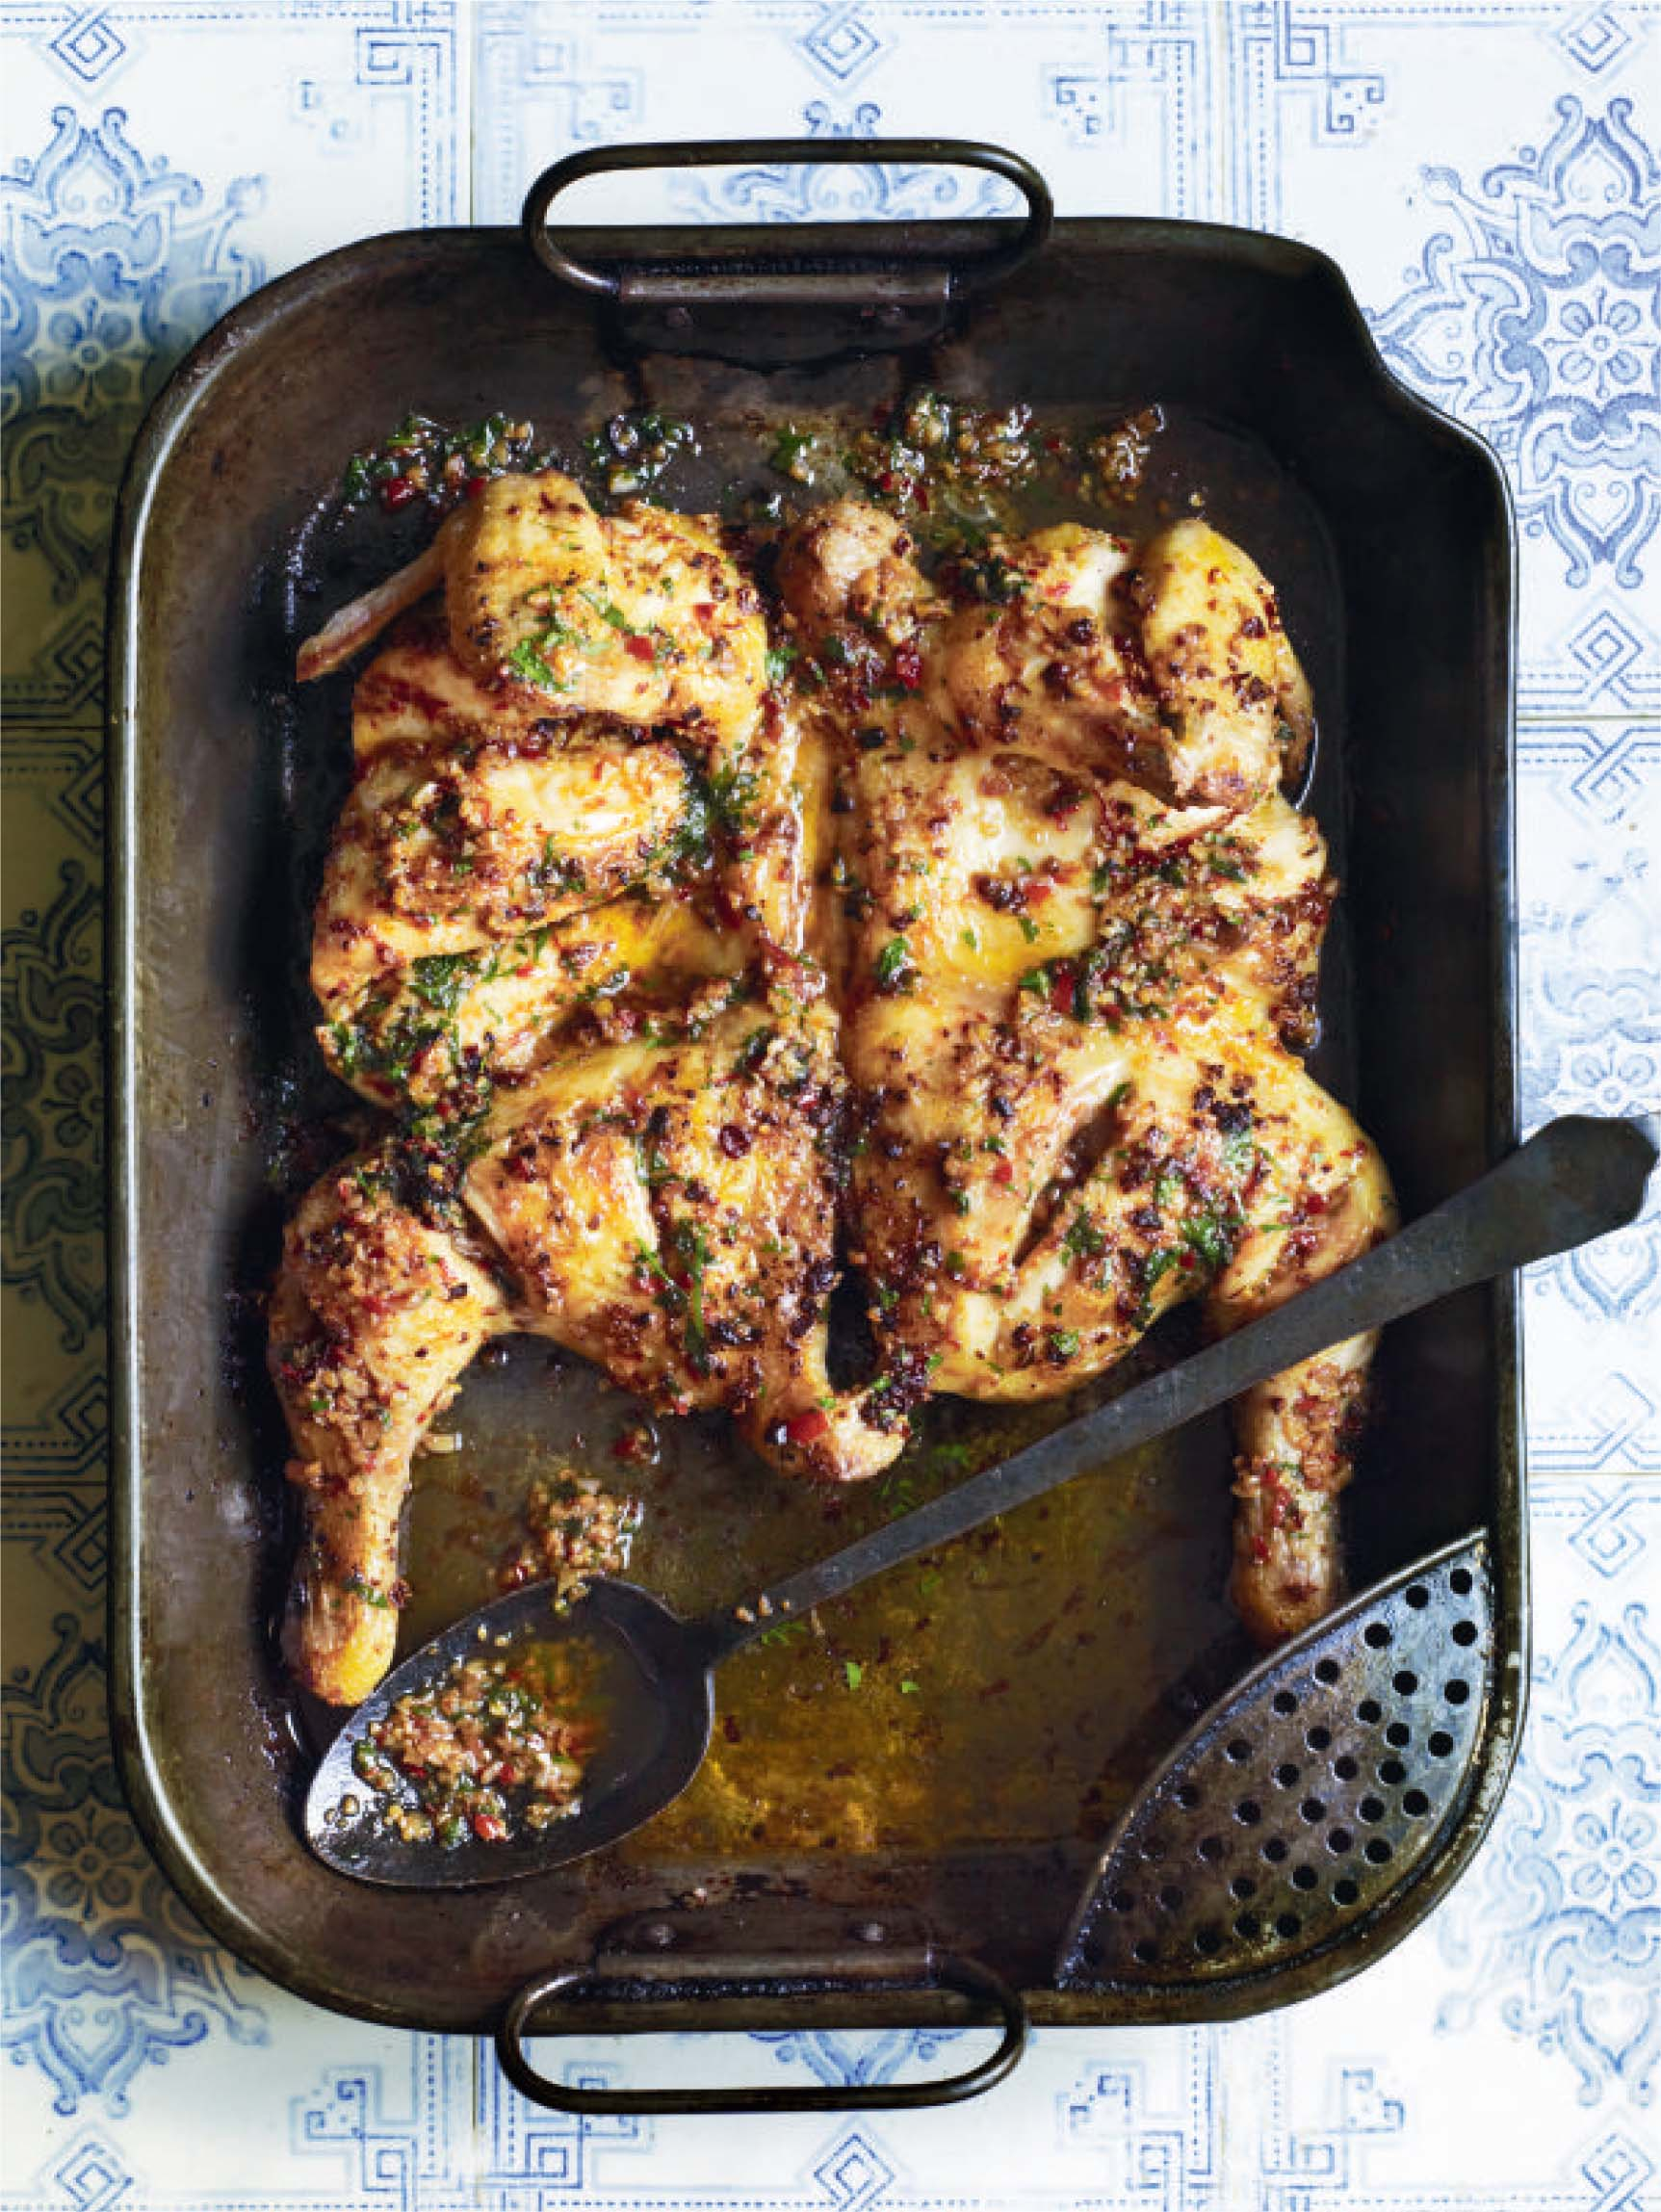 Grilled piri piri chicken with potato crisps